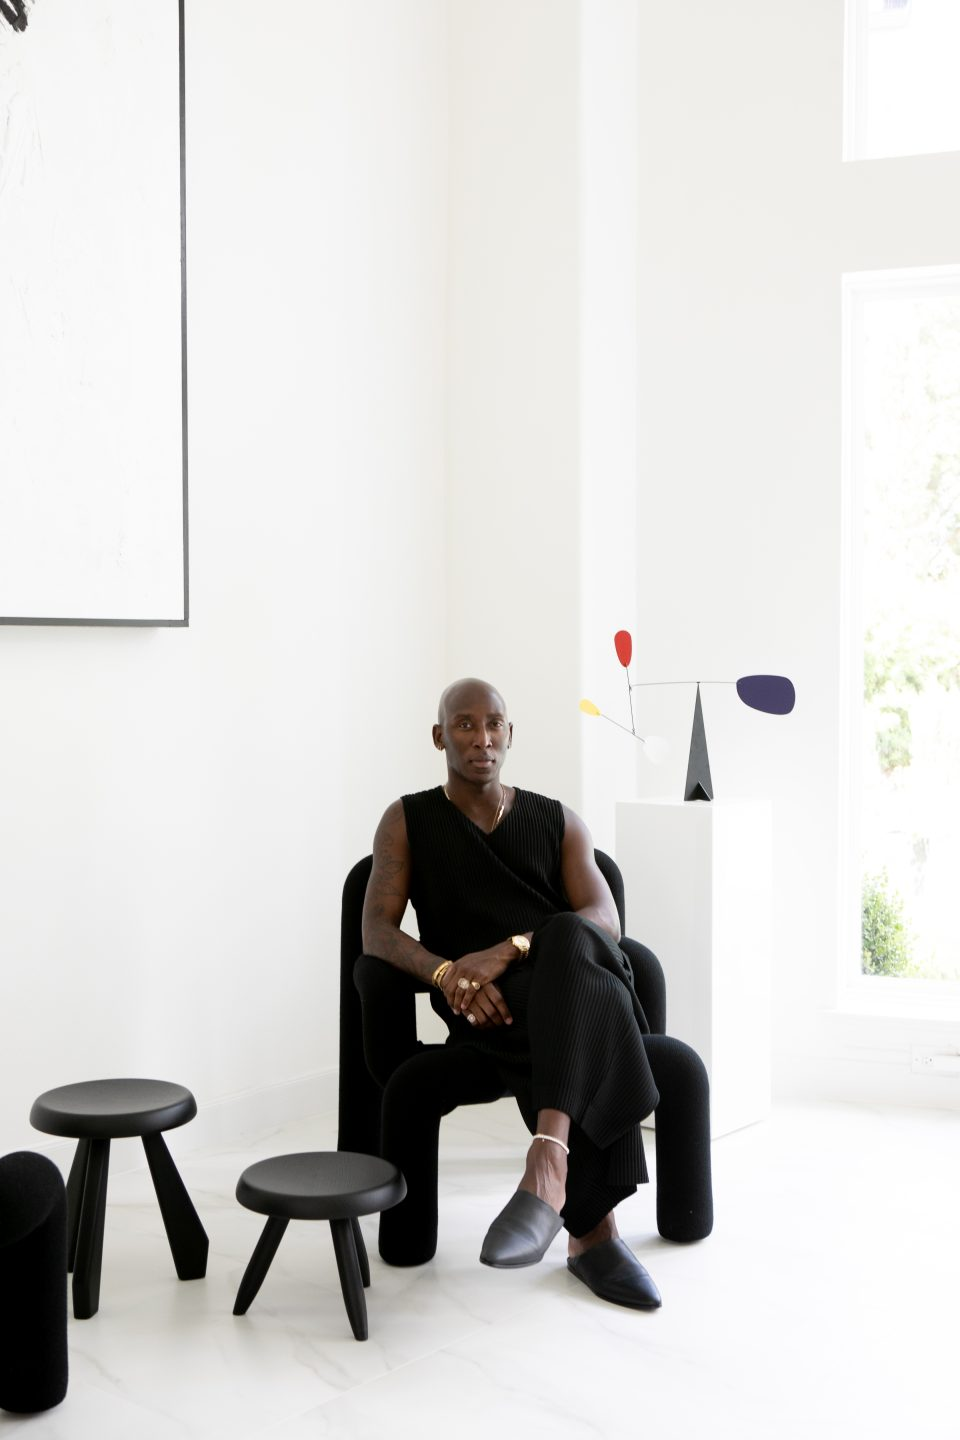 Mateo's Elegant, Minimal Jewelry Designs Inspired His Gallery-Like Home